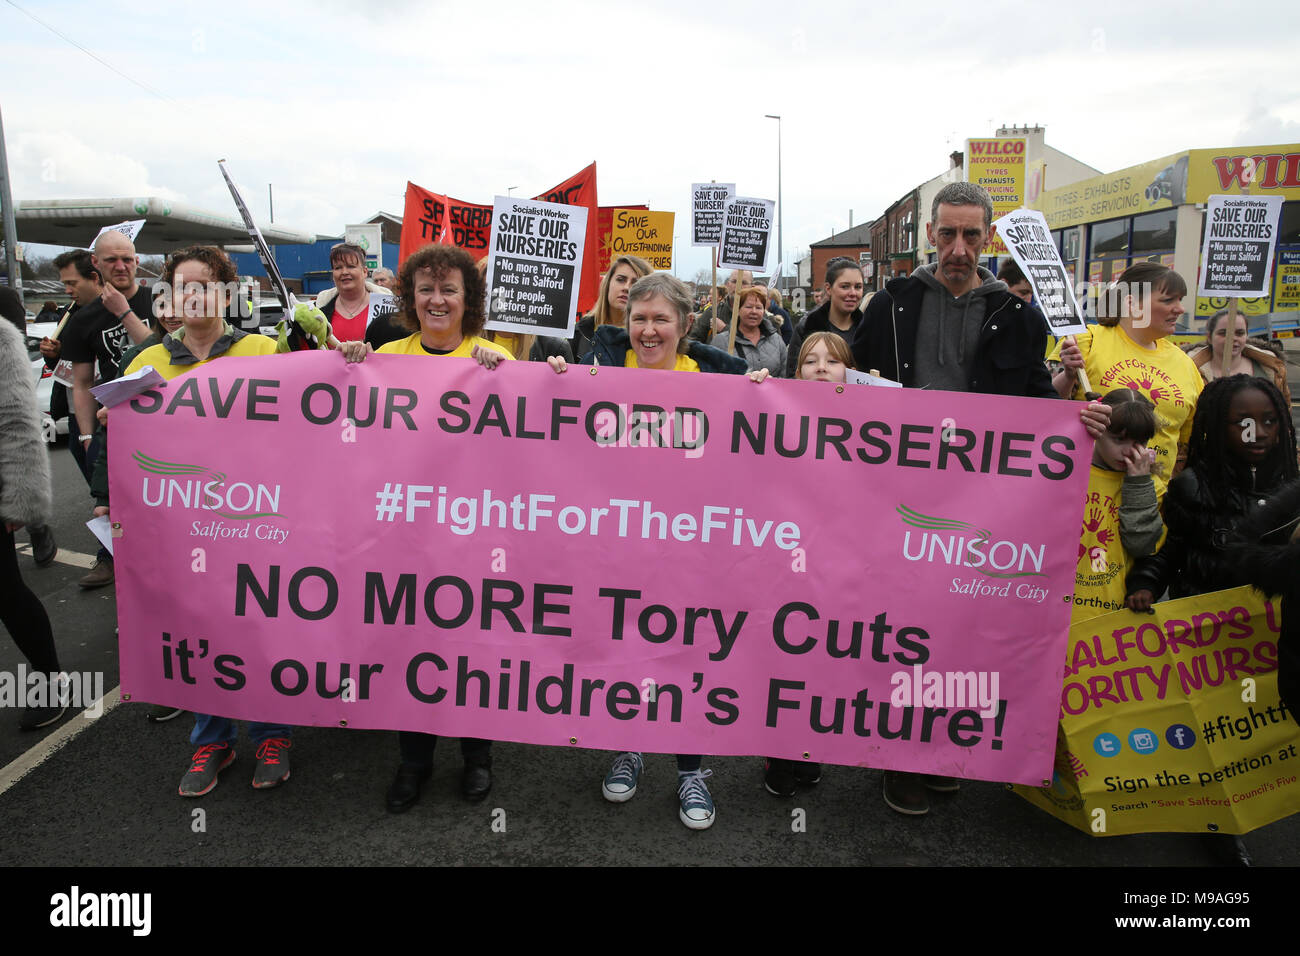 Salford, UK. 24th March, 2018. Unison members march to save Salford local authority nurseries which had been under threat of closure.  The Mayor has confirmed the status of the nurseries for the next 12 months and that he has agreed to put another £1.5m of Council money into them for that period Swinton, Salford, 24th March, 2018 (C)Barbara Cook/Alamy Live News Stock Photo